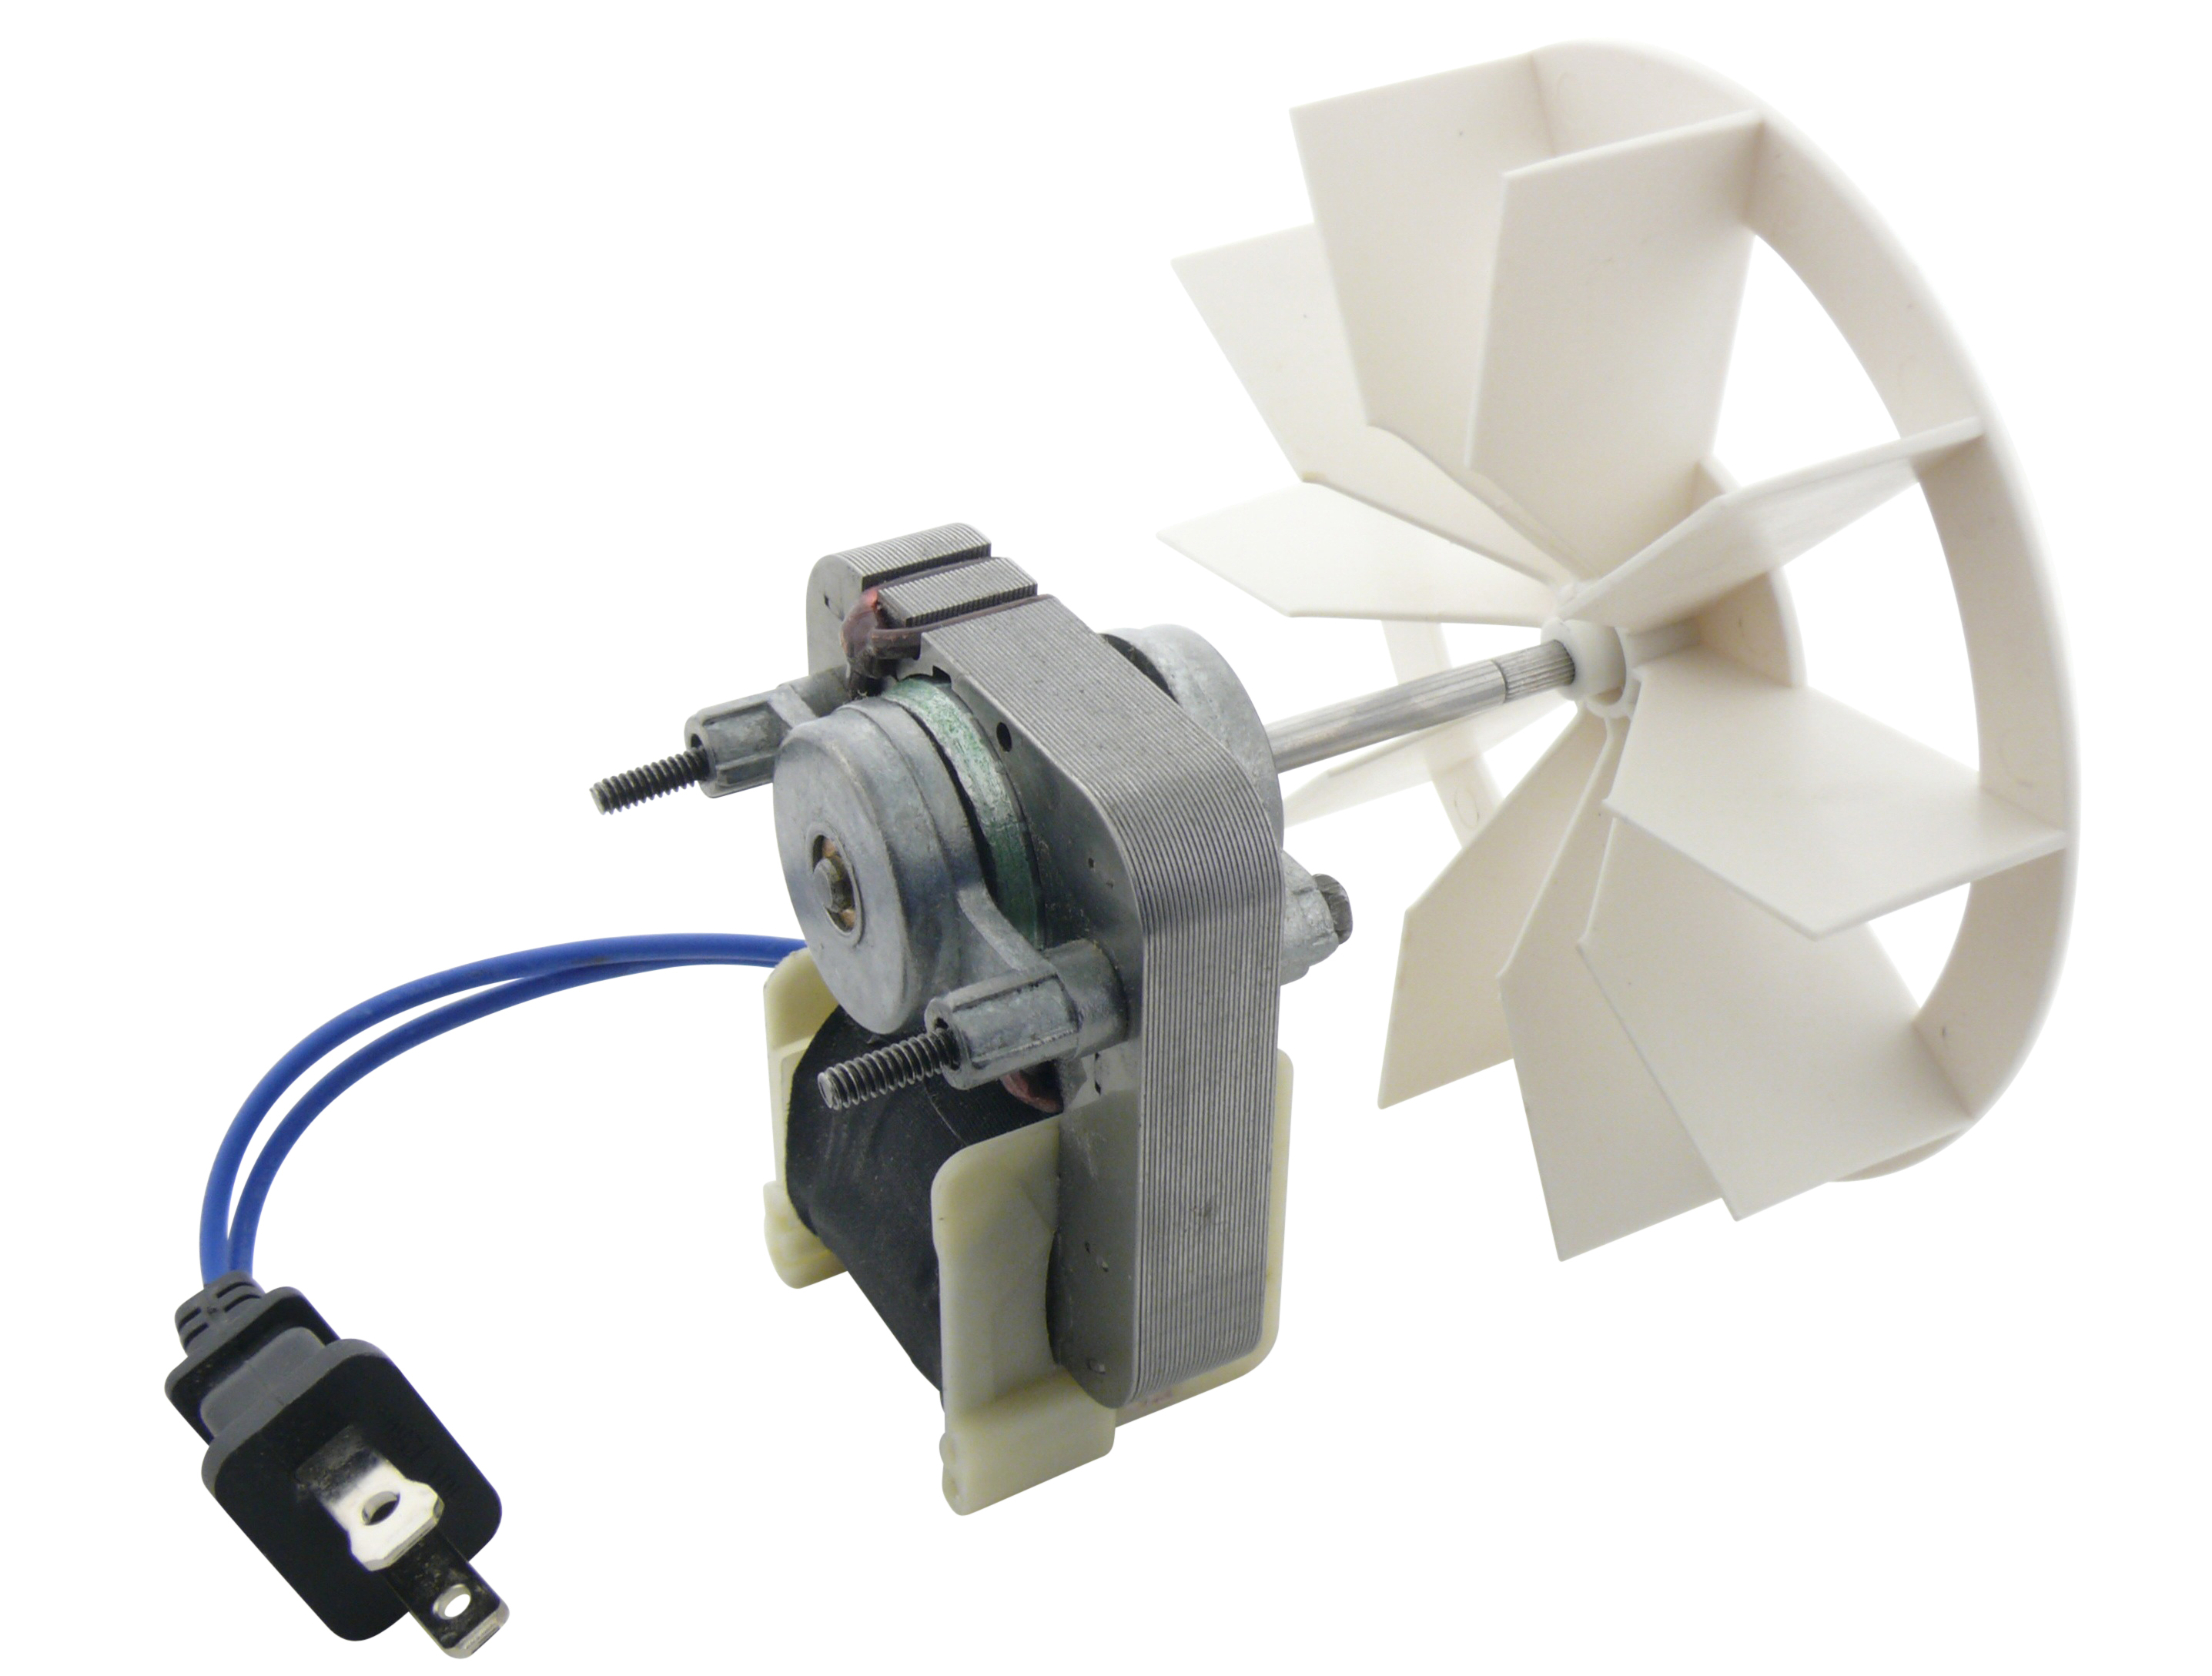 endurance pro bathroom vent fan motor and blower wheel replacement electric motors kit compatible with nutone broan 50cfm 120v walmart com